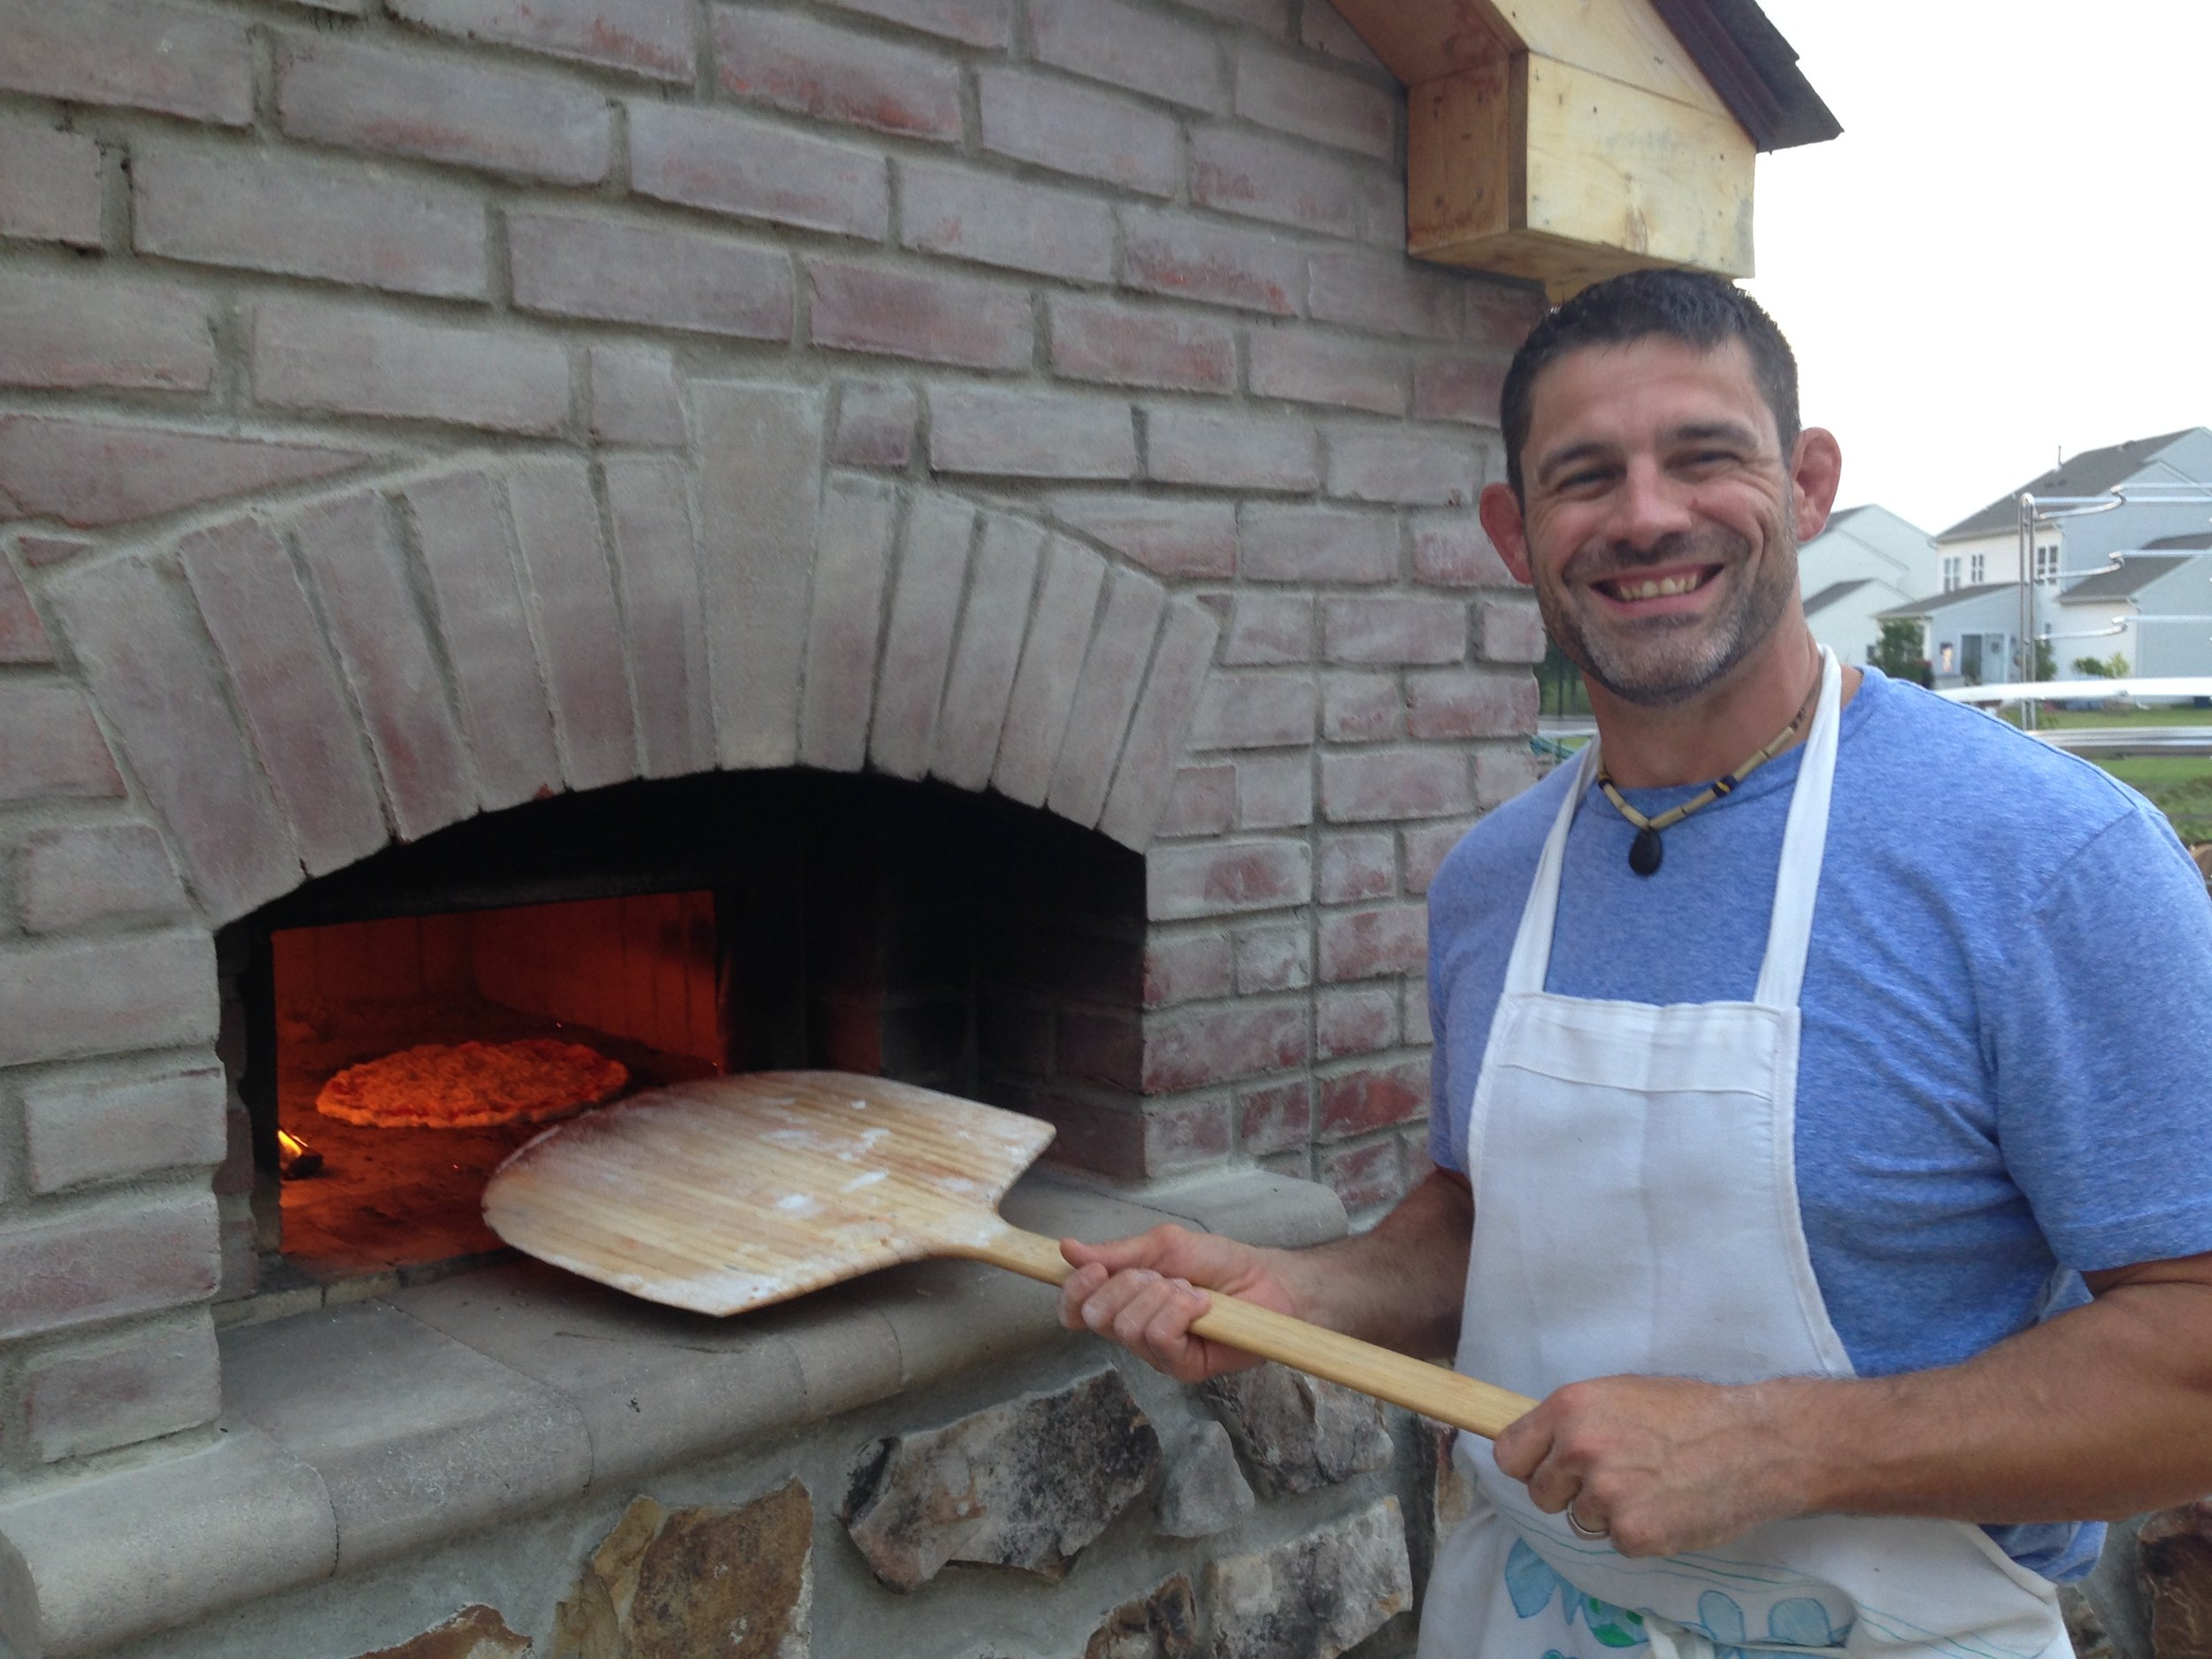 Our bread oven is one of my favorite things I have built for the family